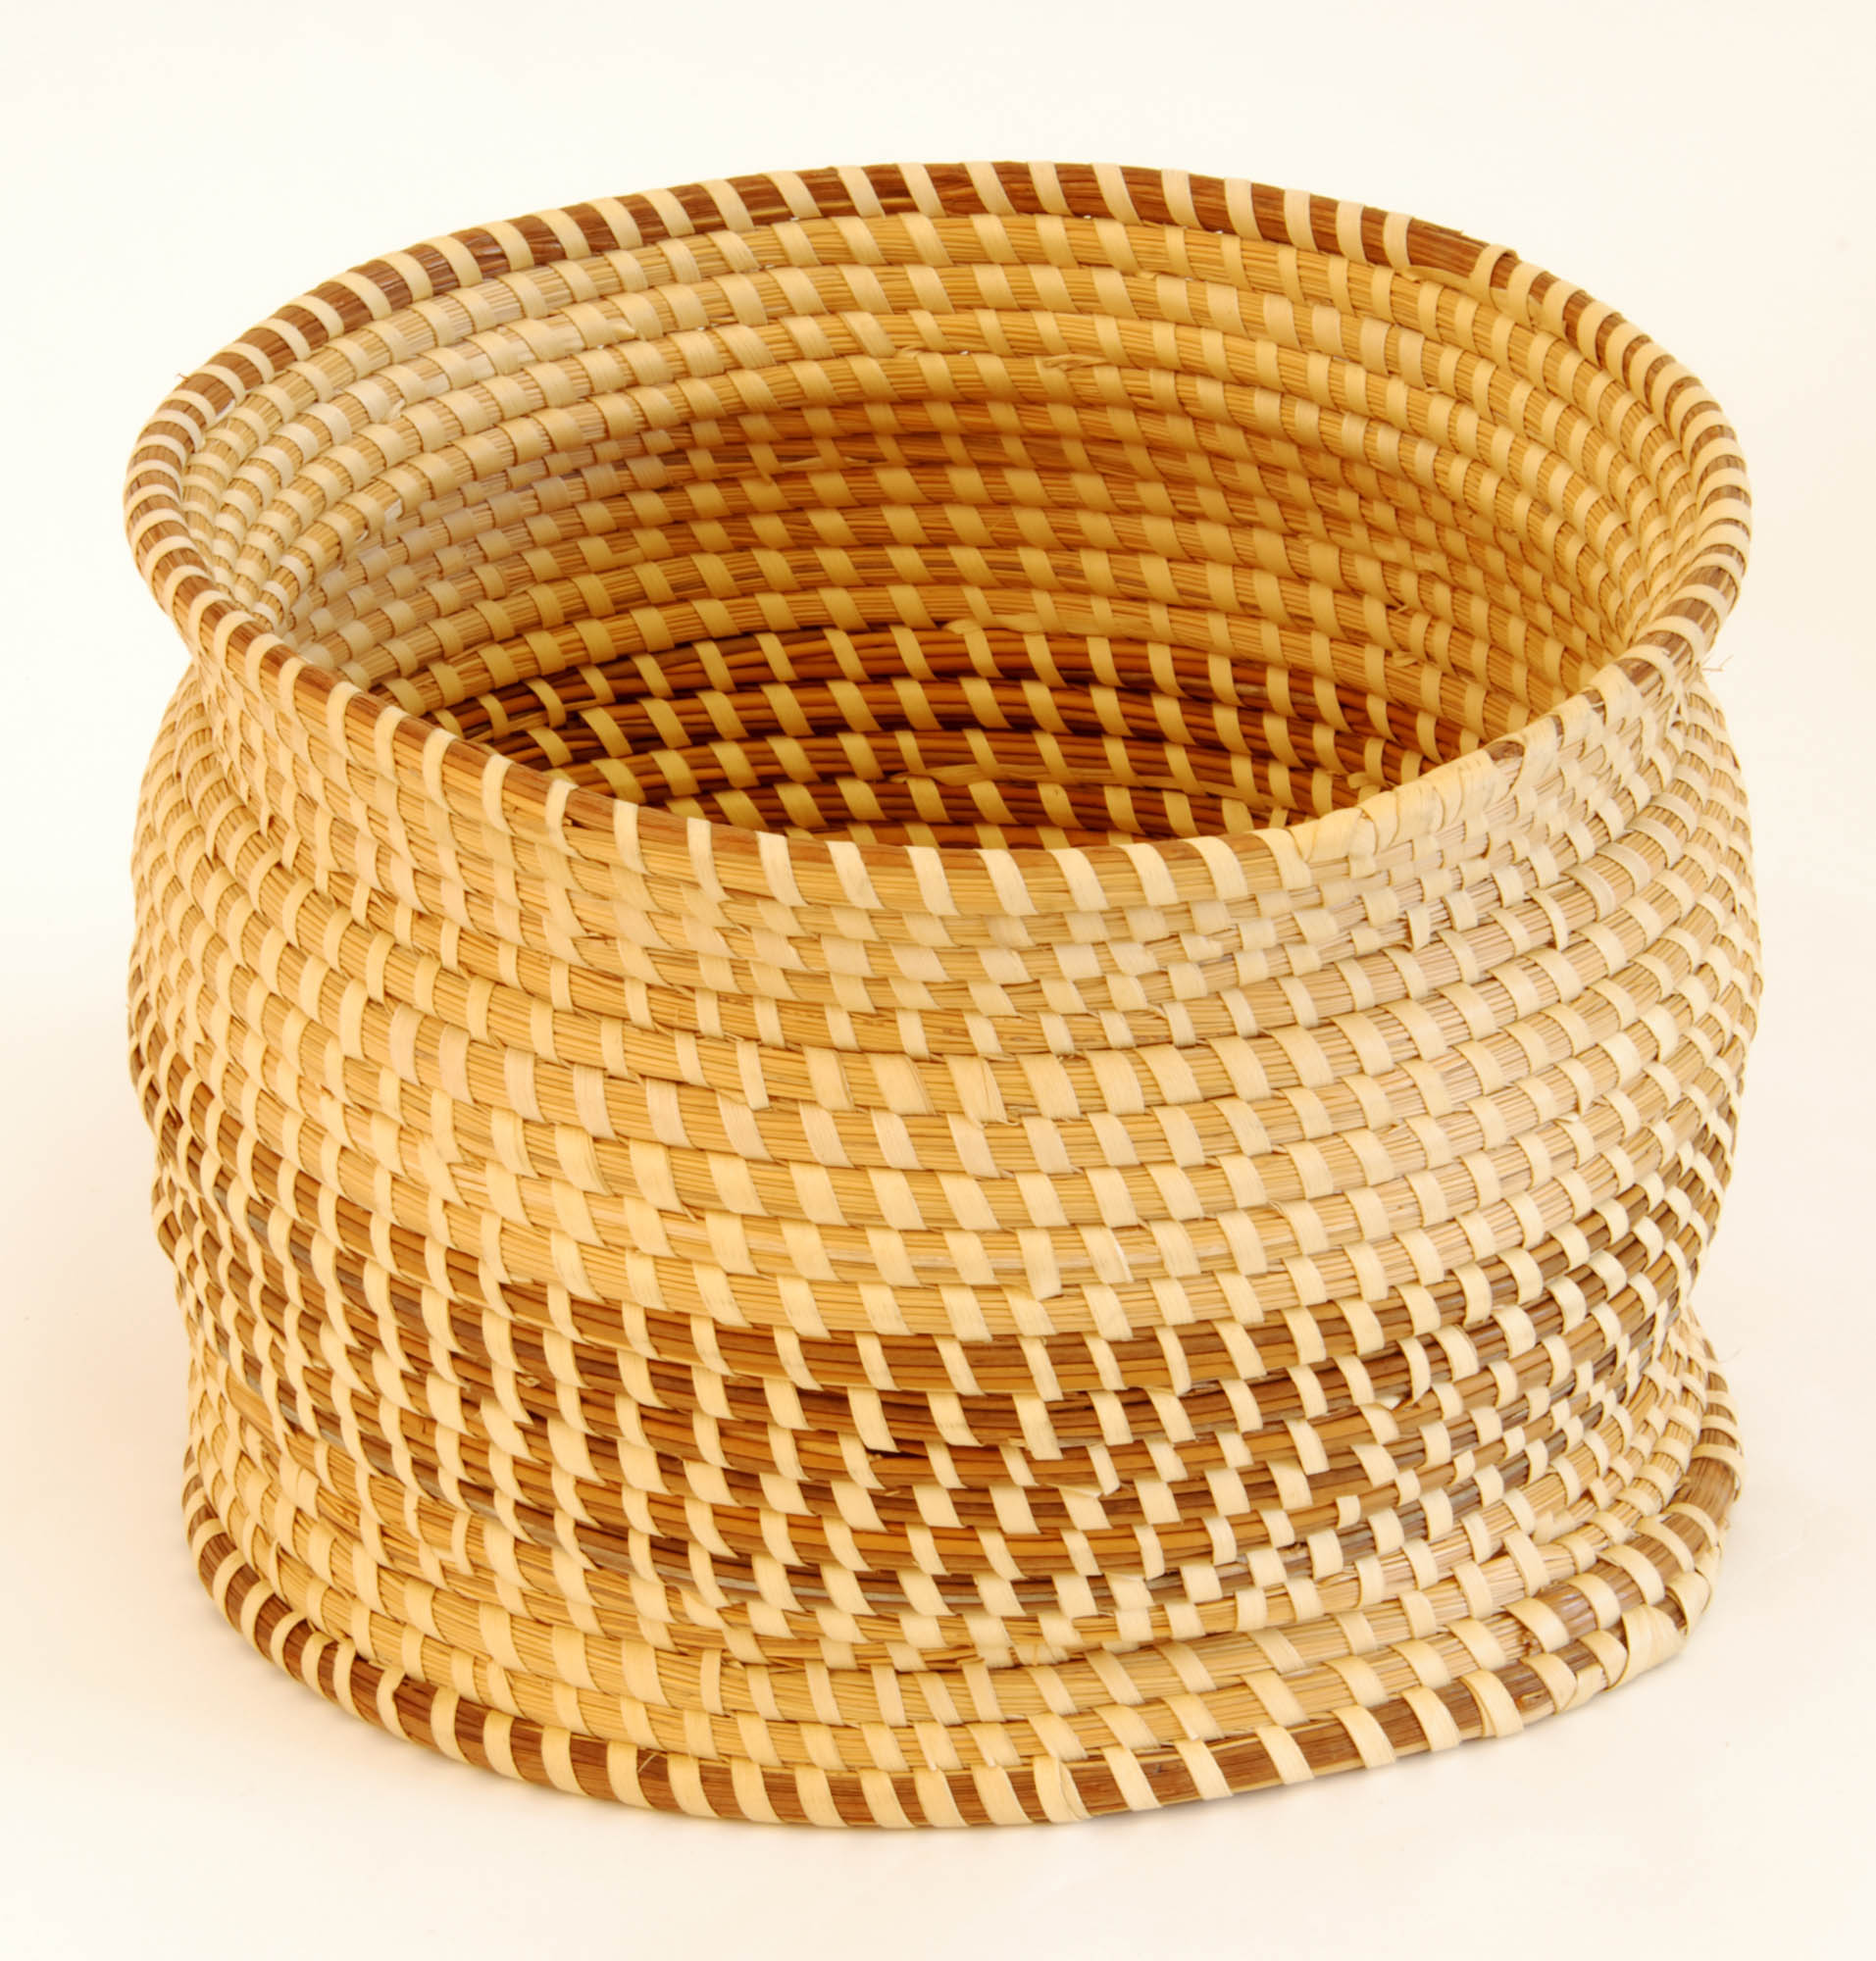 Sweetgrass waste basket